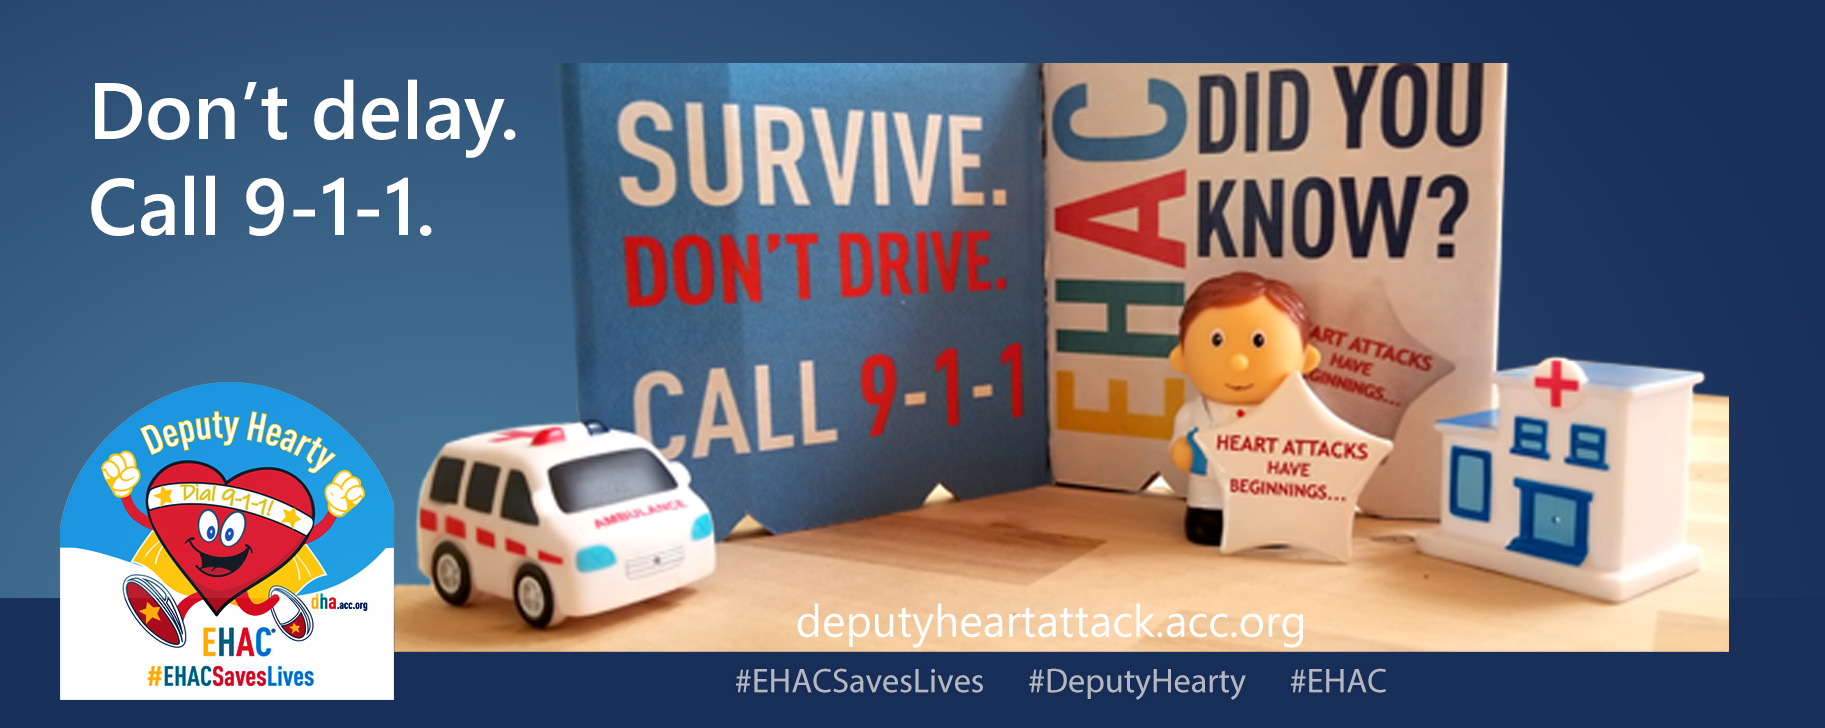 Deputy Hearty says Call 9-1-1